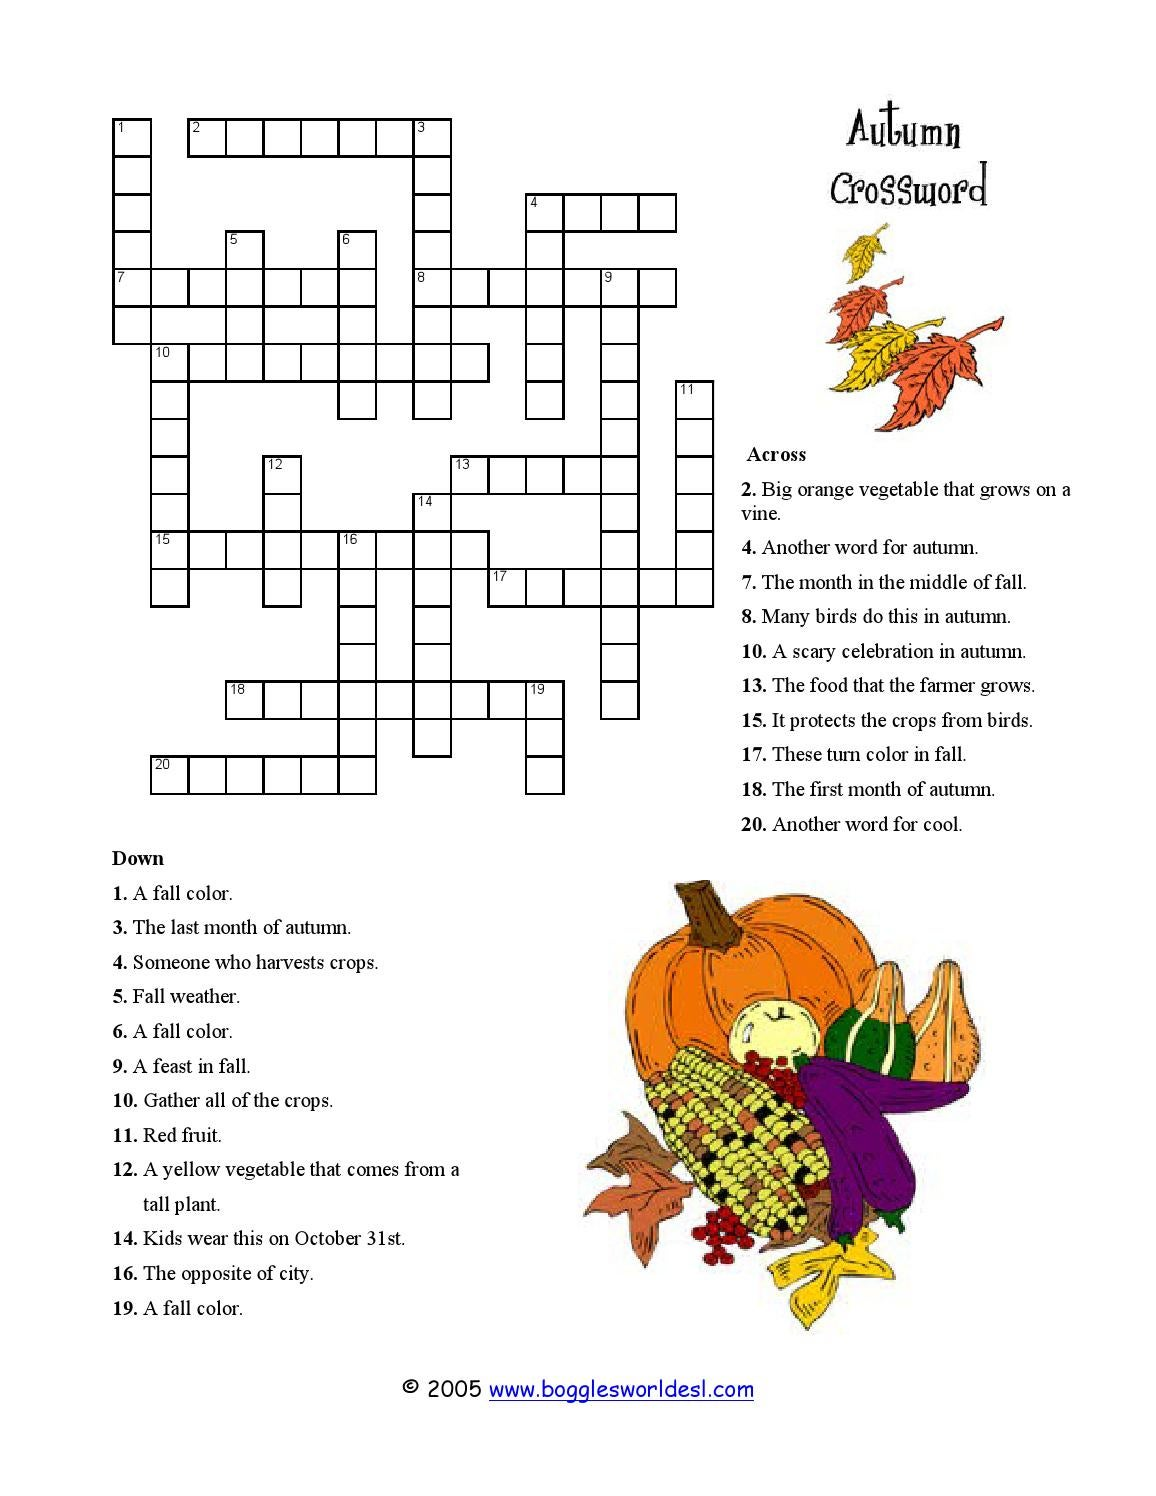 It's just an image of Trust Fall Crossword Puzzle Printable